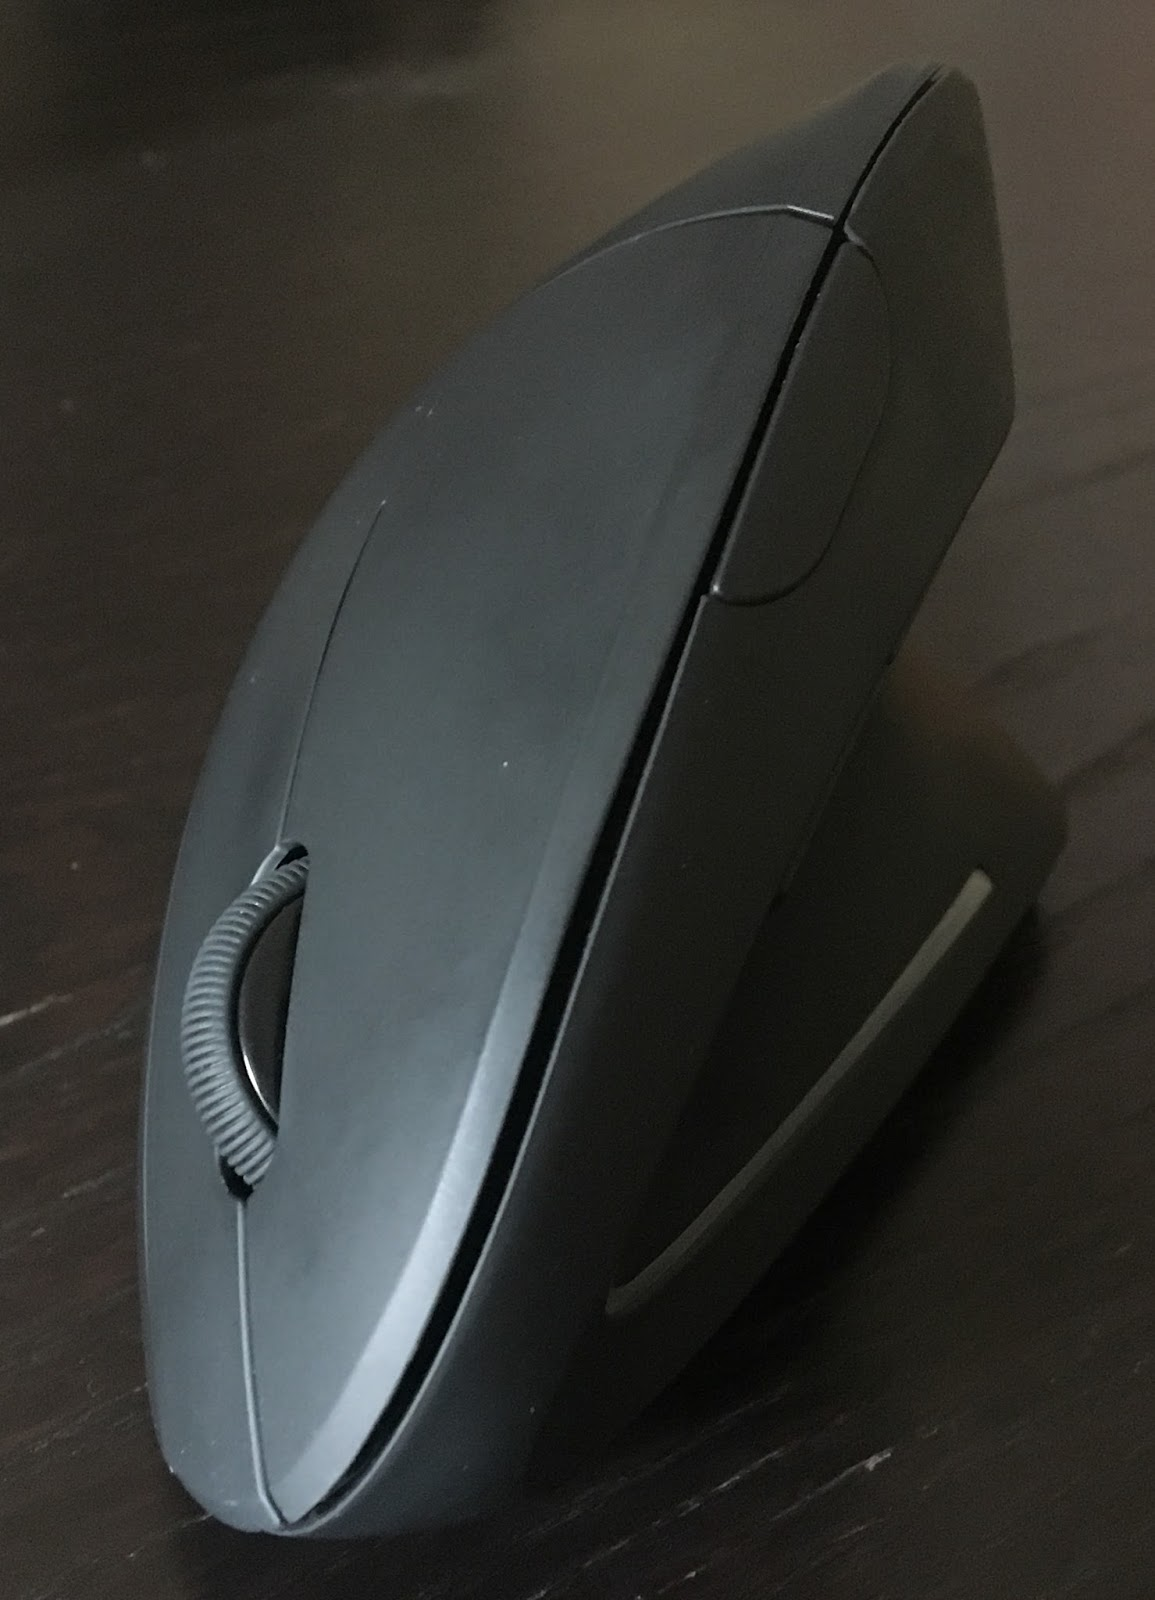 Subclassed: CSL Vertical Mouse Review